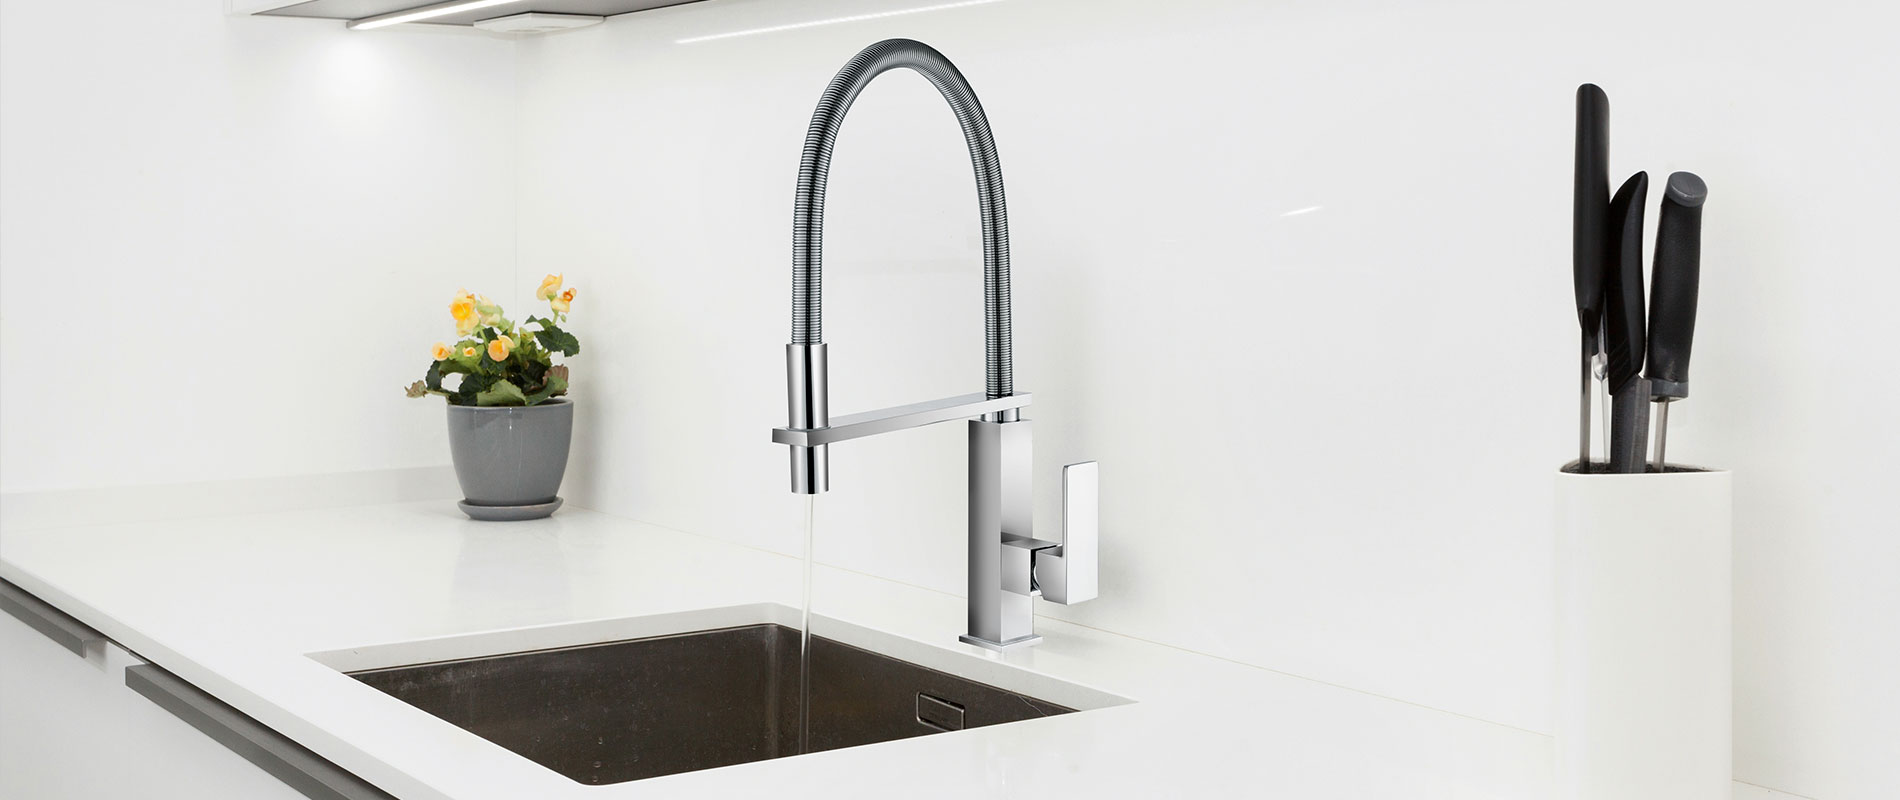 High-end kitchen mixers by DueGi